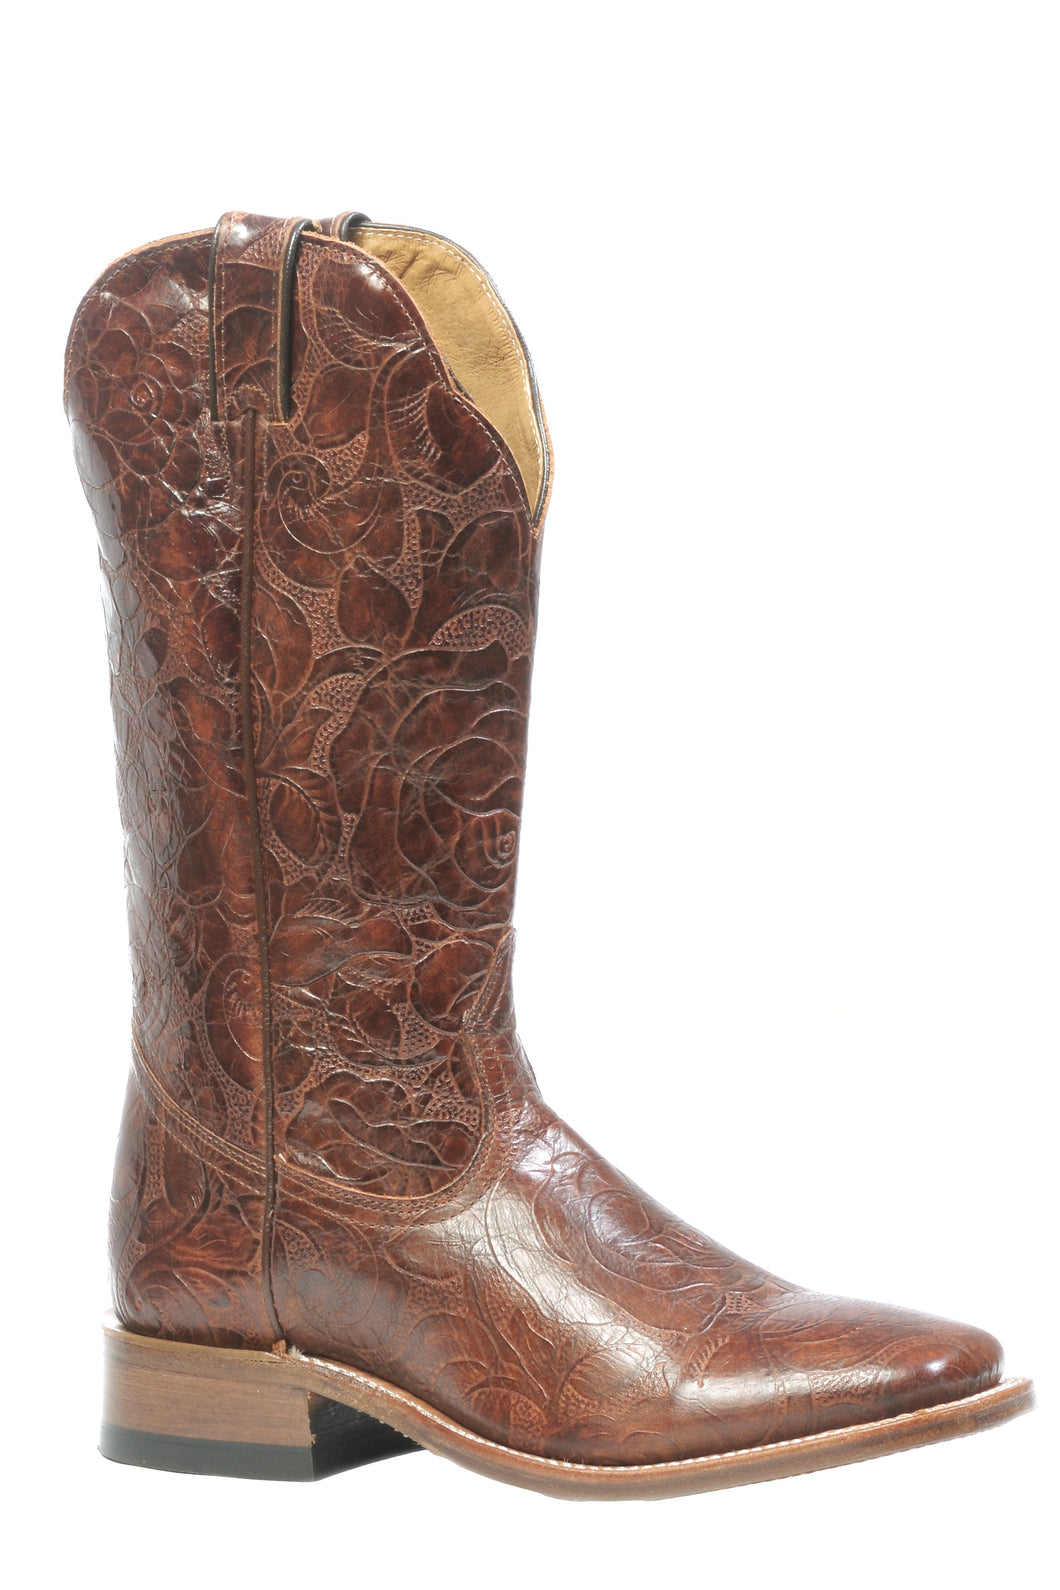 BOULET WOMEN'S RUSTIC EAGLE BRANDY BOOT- STYLE #3207